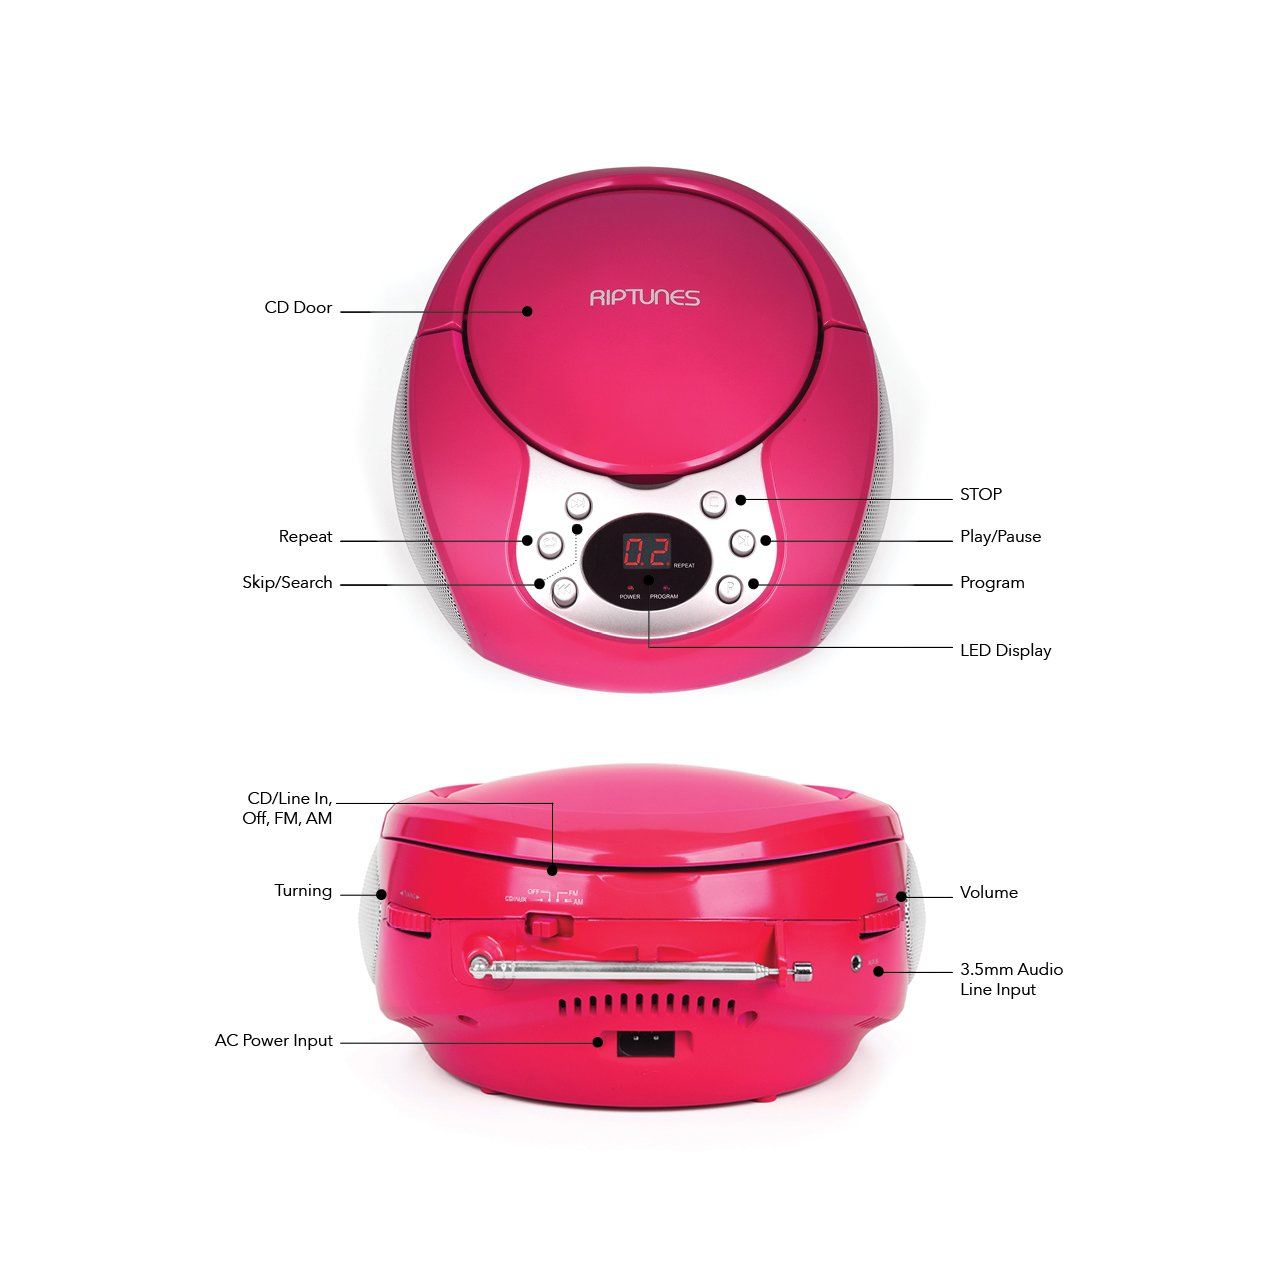 Riptunes Portable CD Player with AM FM Radio Potable radios Boom Box with Aux Line-in, Pink by Riptunes (Image #2)